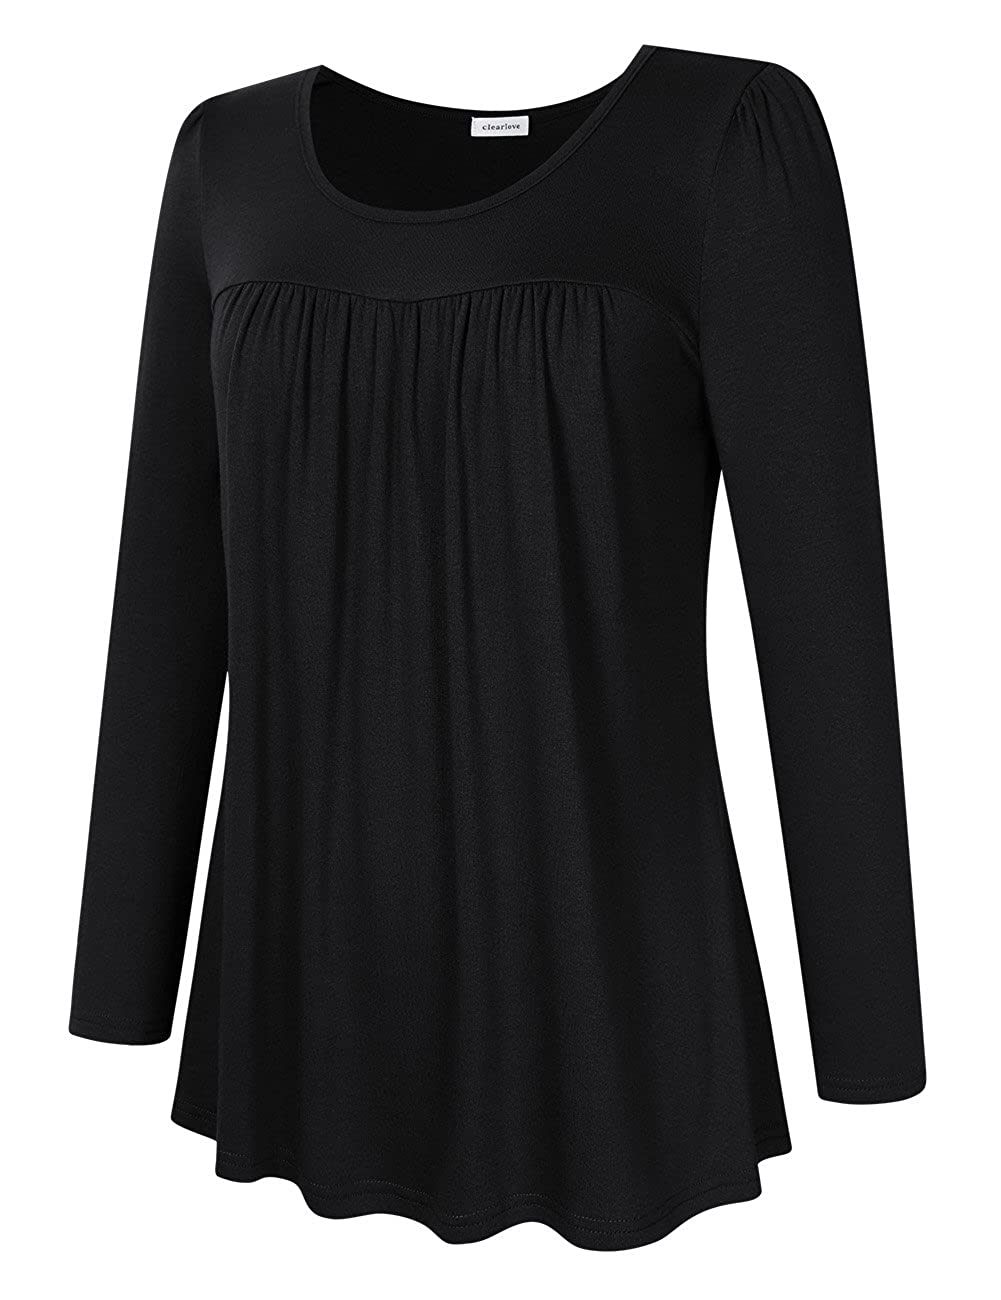 a216149cdbf Clearlove Women s Plus Size Tops Shirts Blouses (L-5XL)  Amazon.co.uk   Clothing